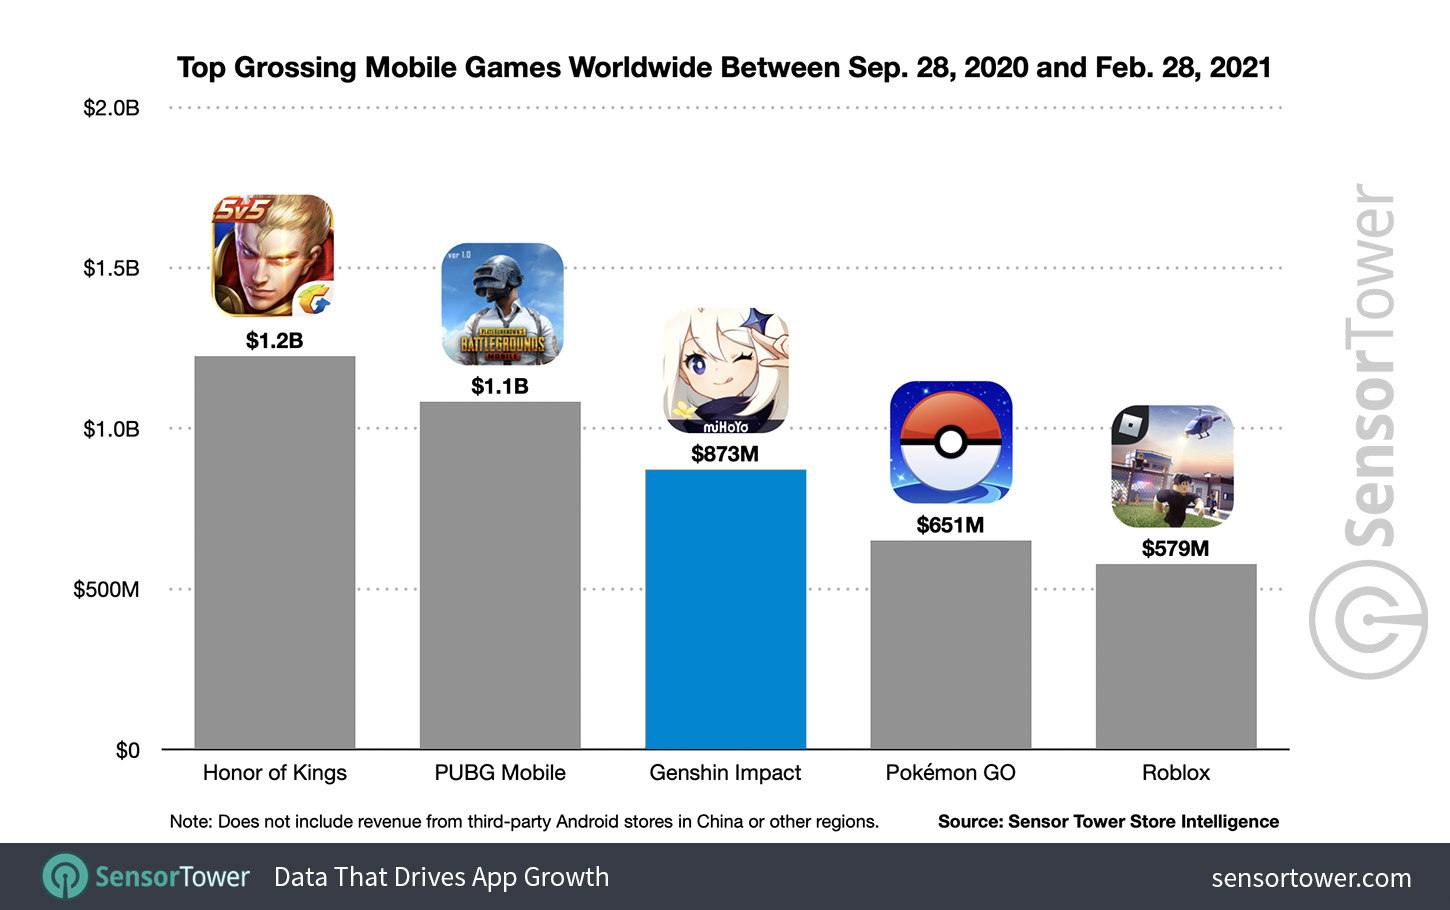 Top Grossing Mobile Games Worldwide Between September 28, 2020 and February 28, 2021